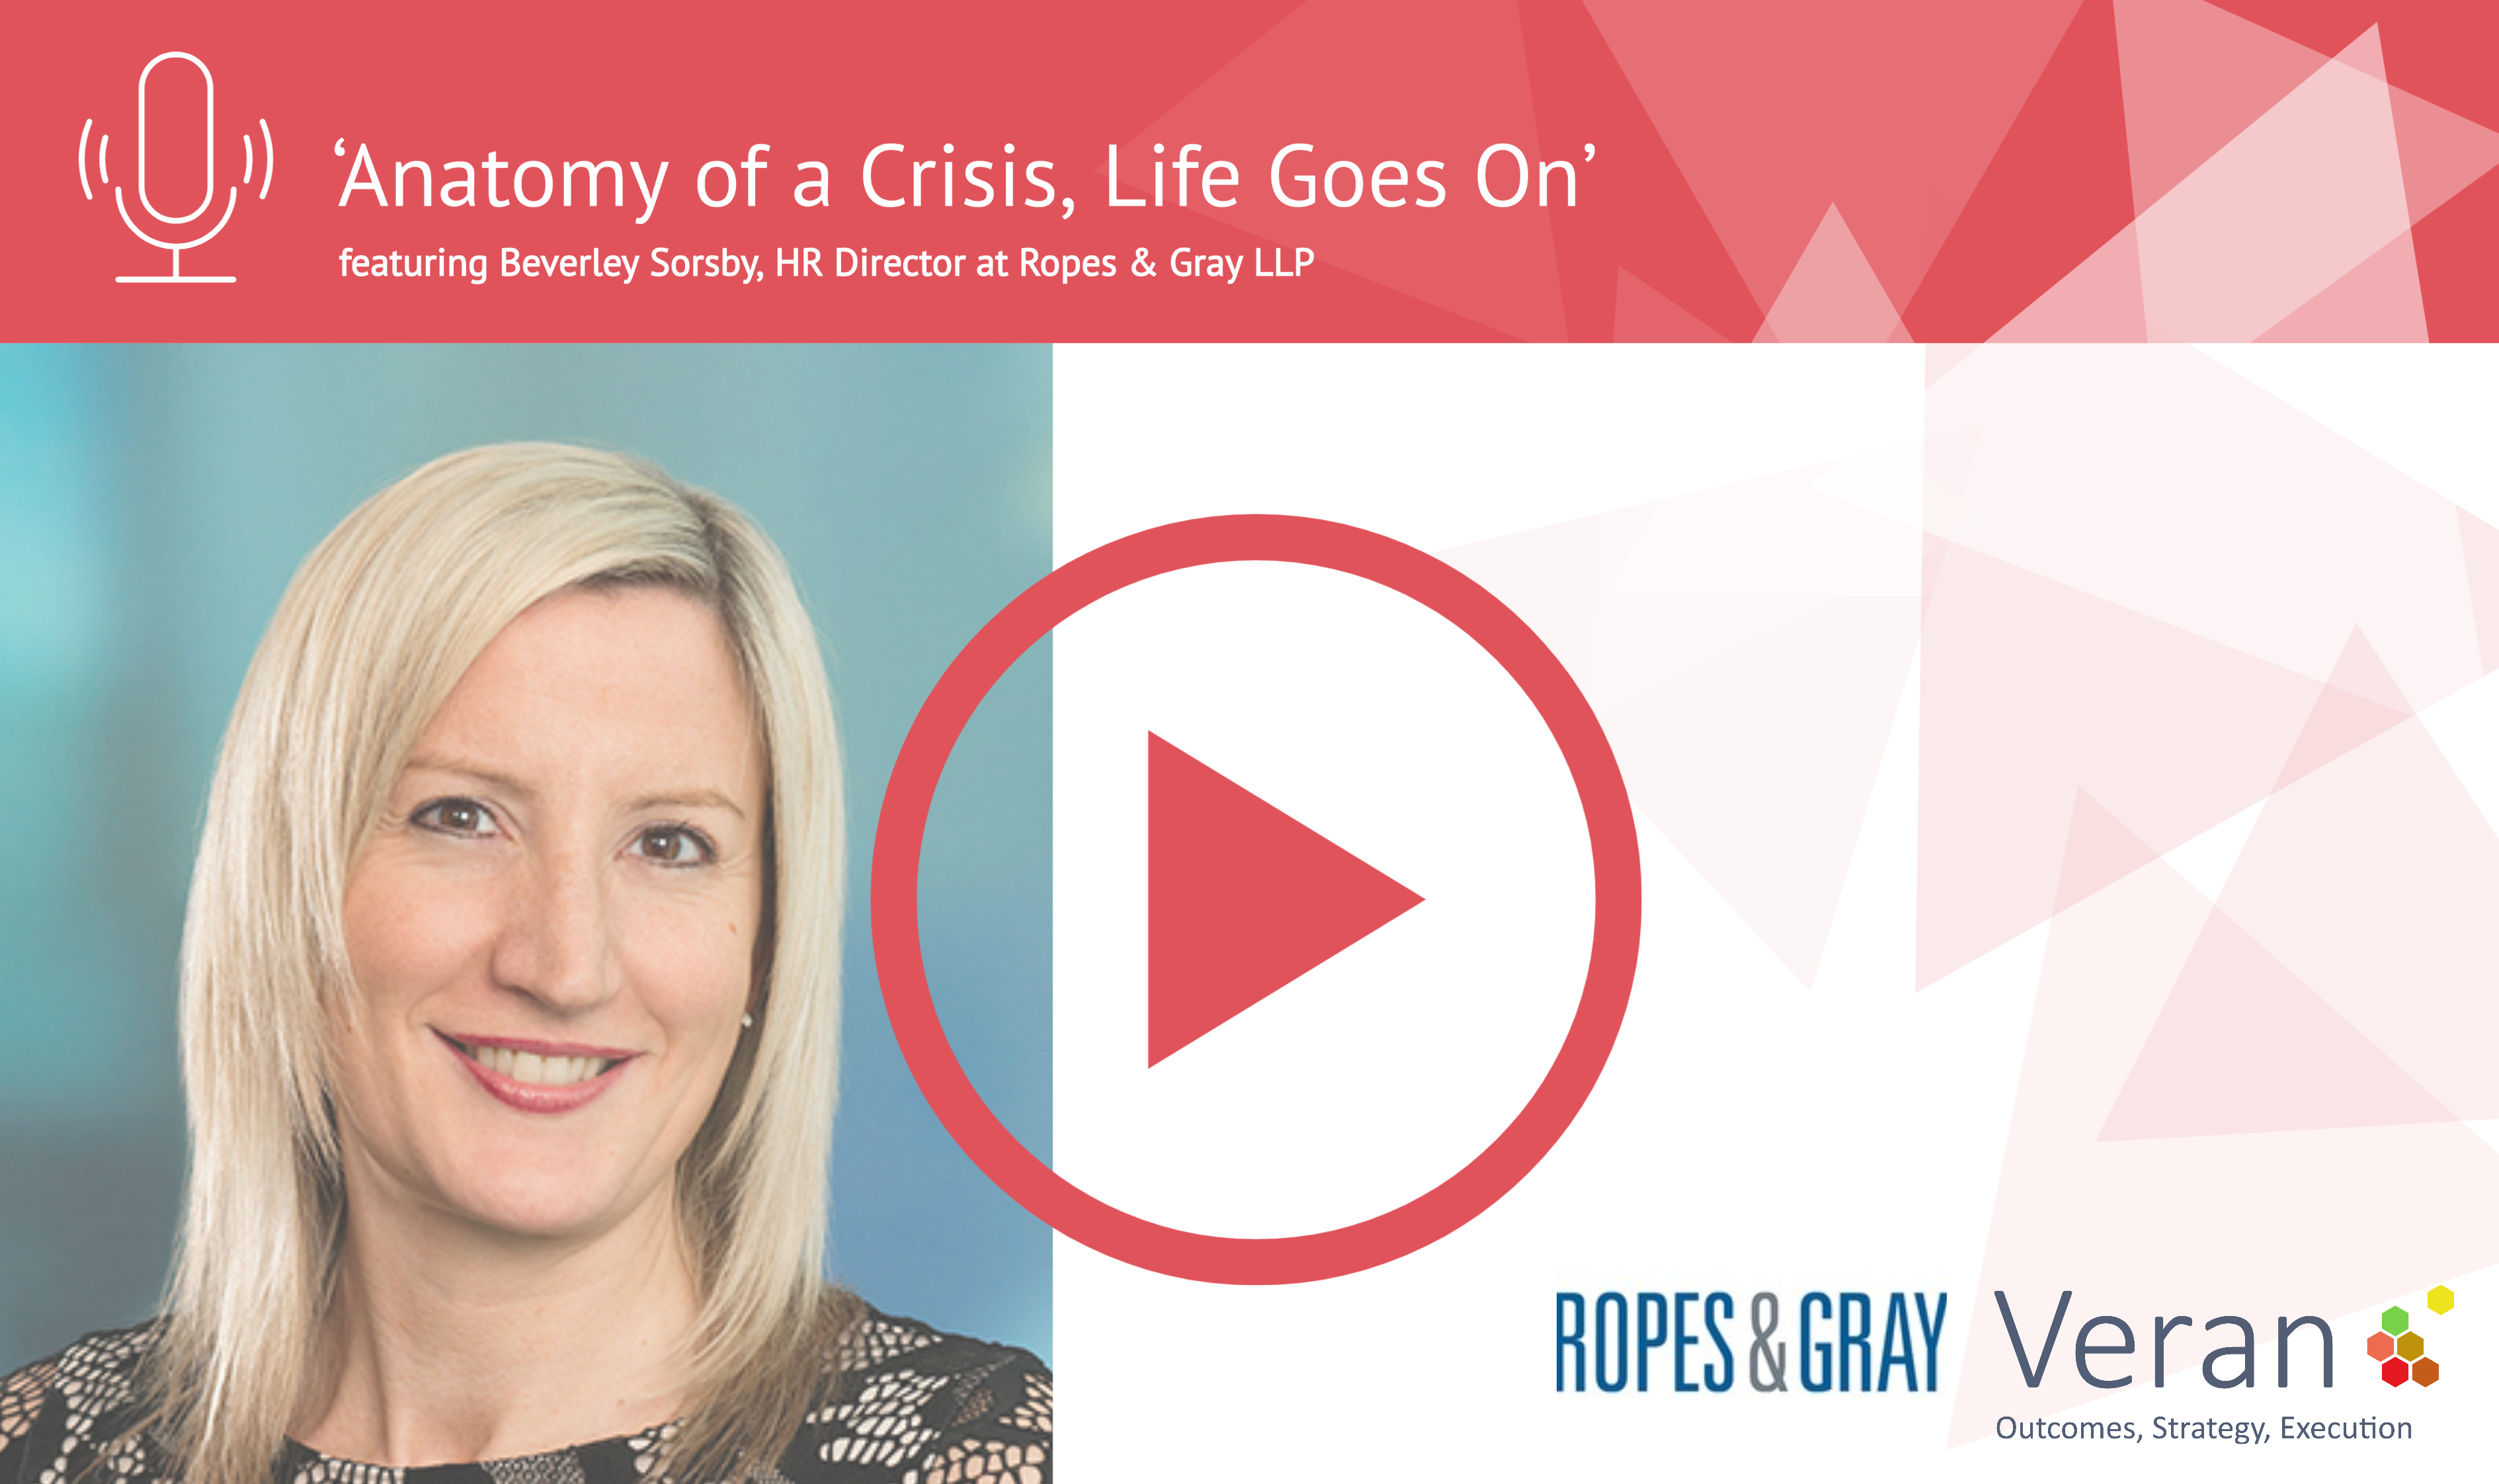 Anatomy of a Crisis, Life Goes On with Ropes & Gray LLP